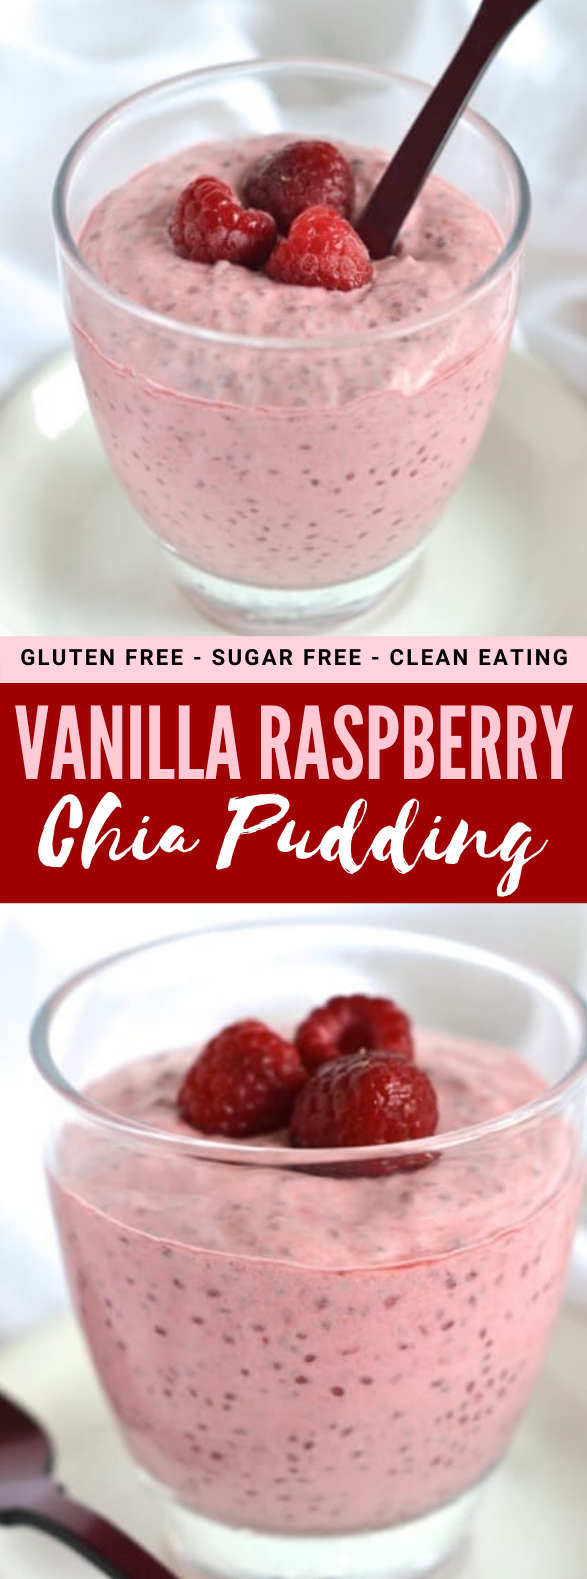 Vanilla Raspberry Chia Pudding #healthy #breakfast